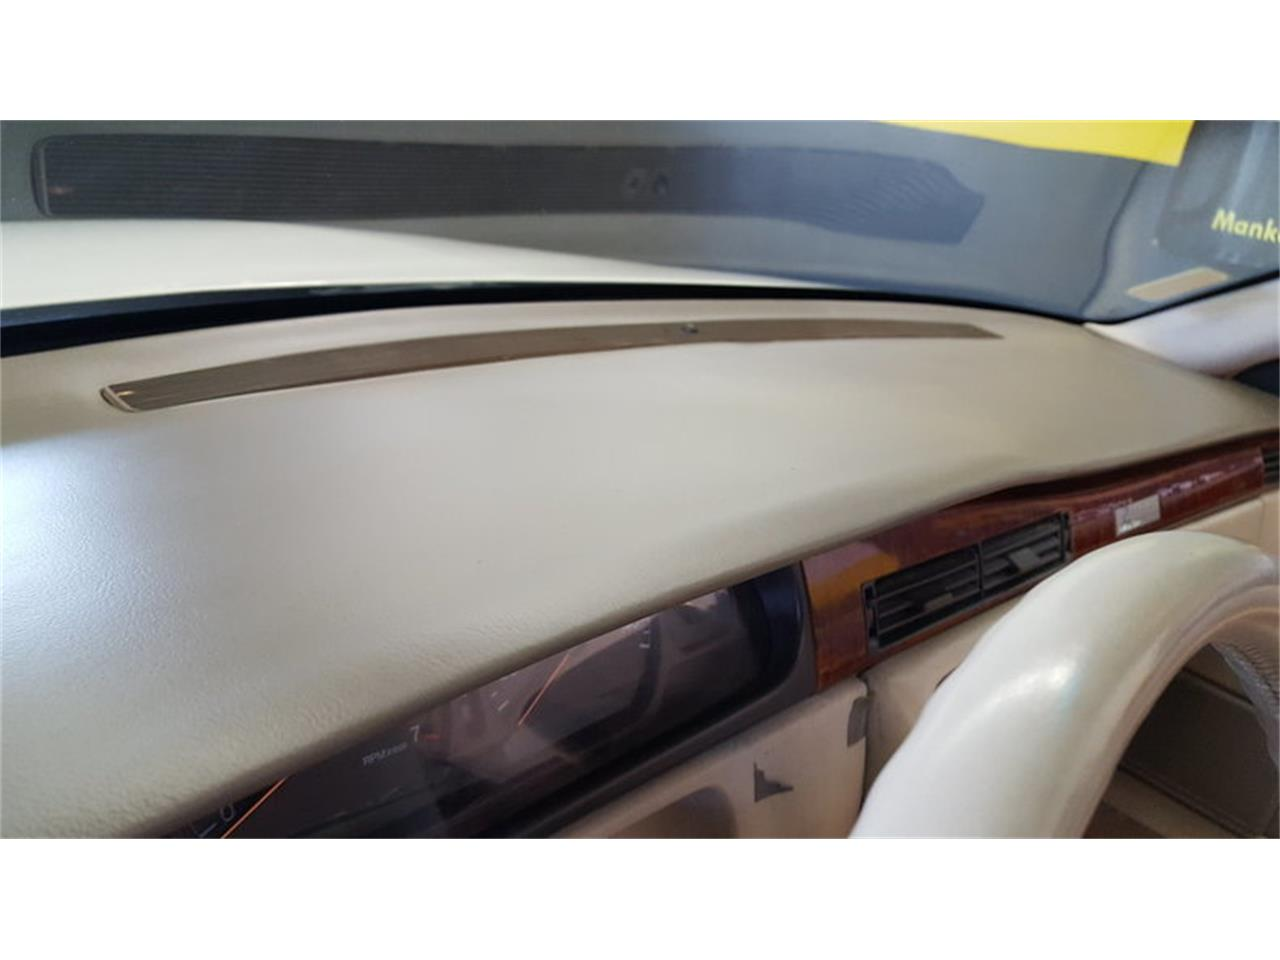 Large Picture of 2002 Cadillac Eldorado located in Mankato Minnesota Auction Vehicle Offered by Unique Specialty And Classics - MALA